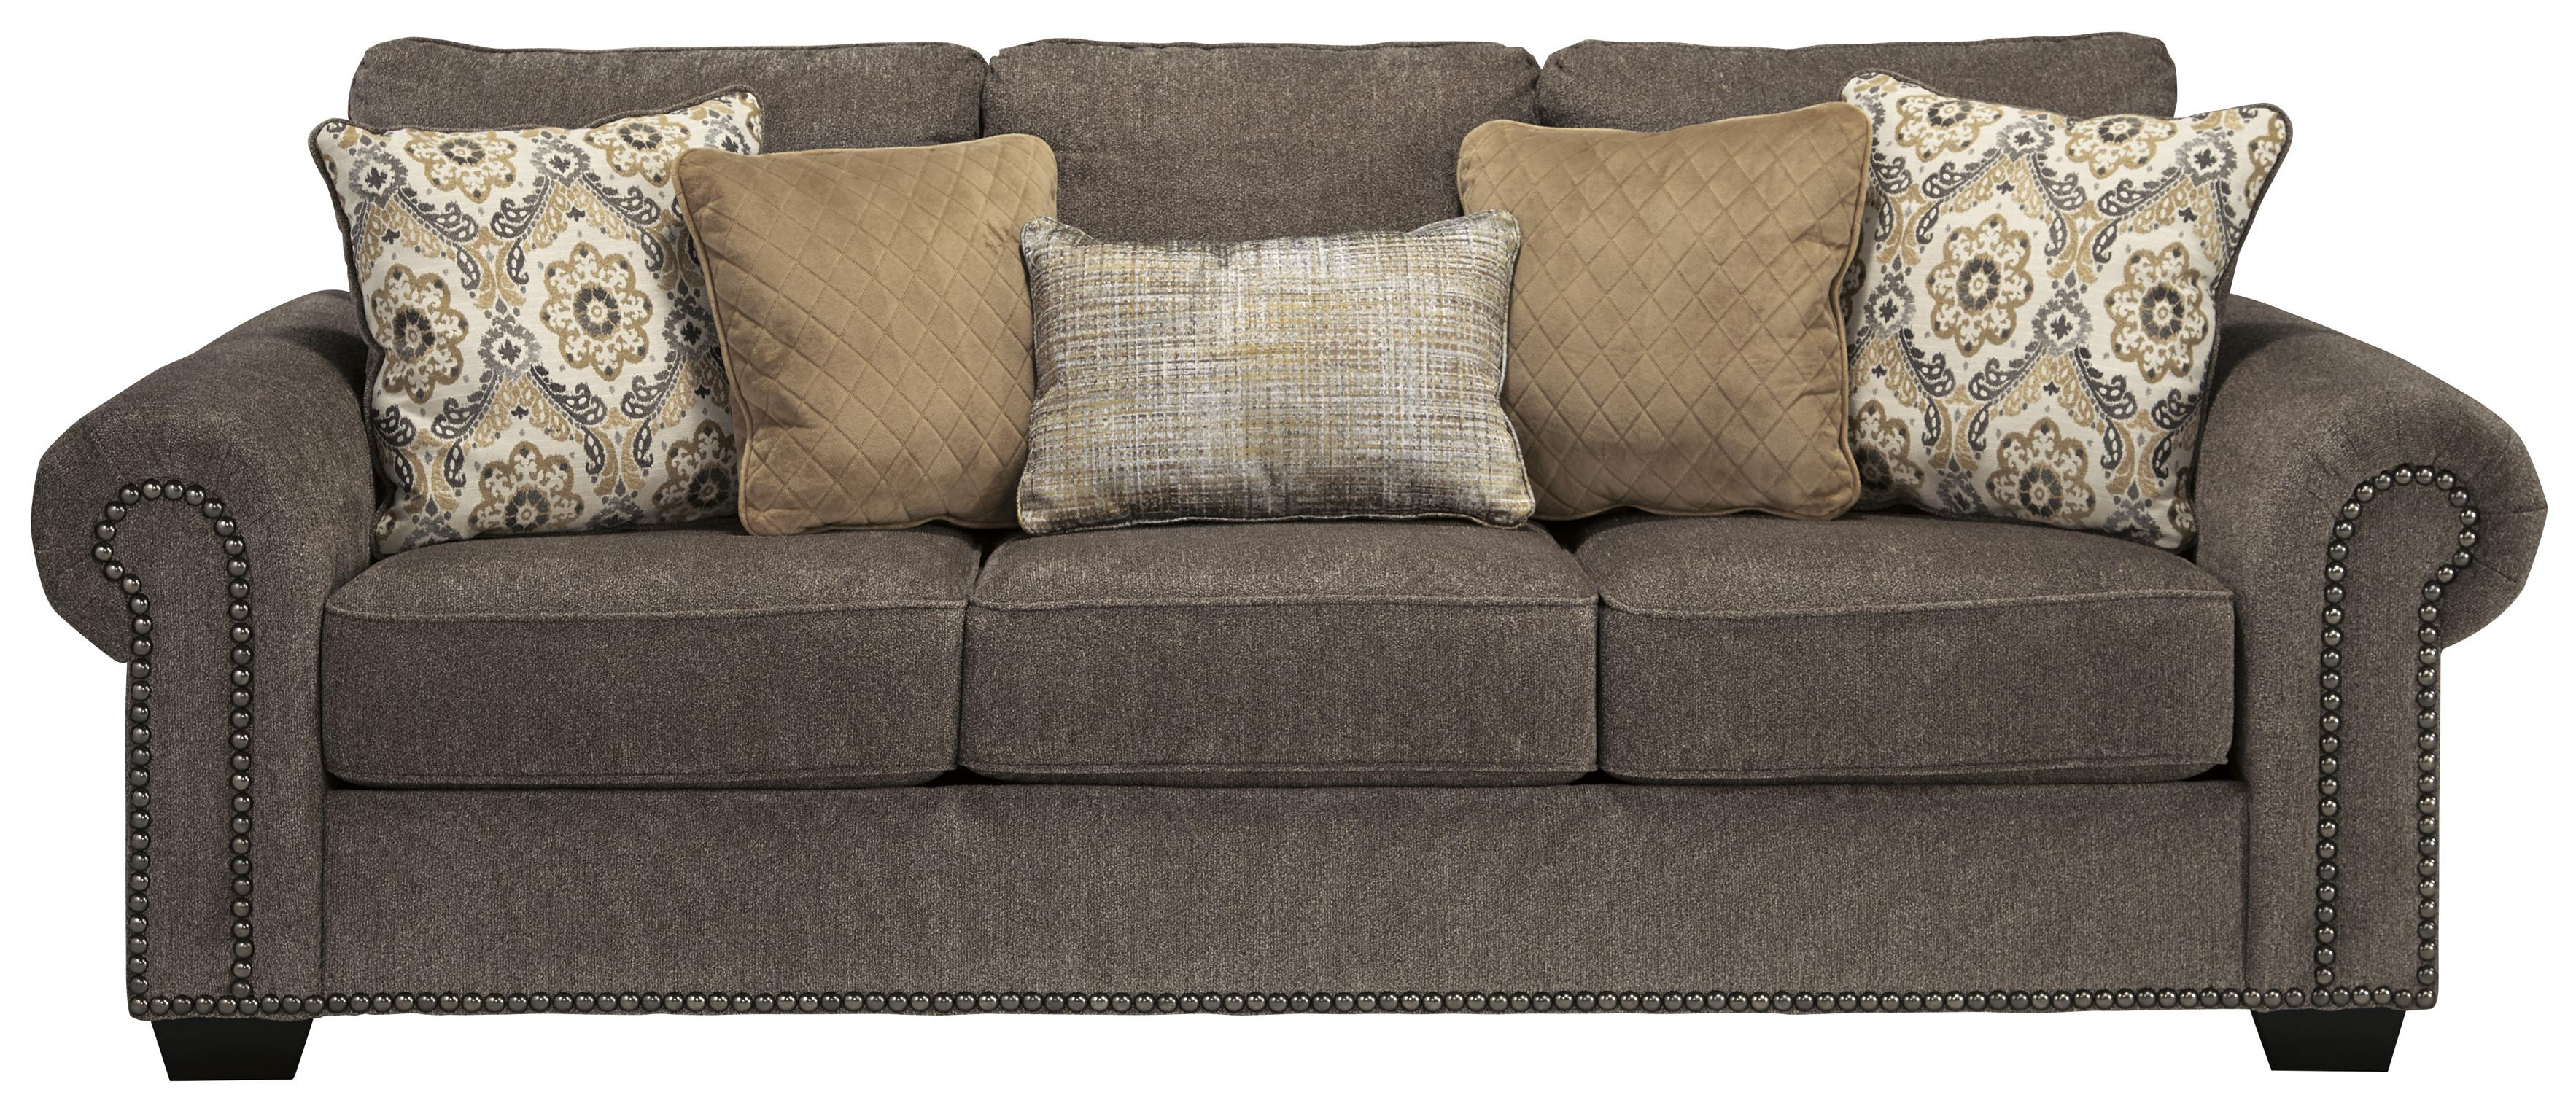 sofa deals nj project bristol opening hours benchcraft emelen transitional with nailhead trim